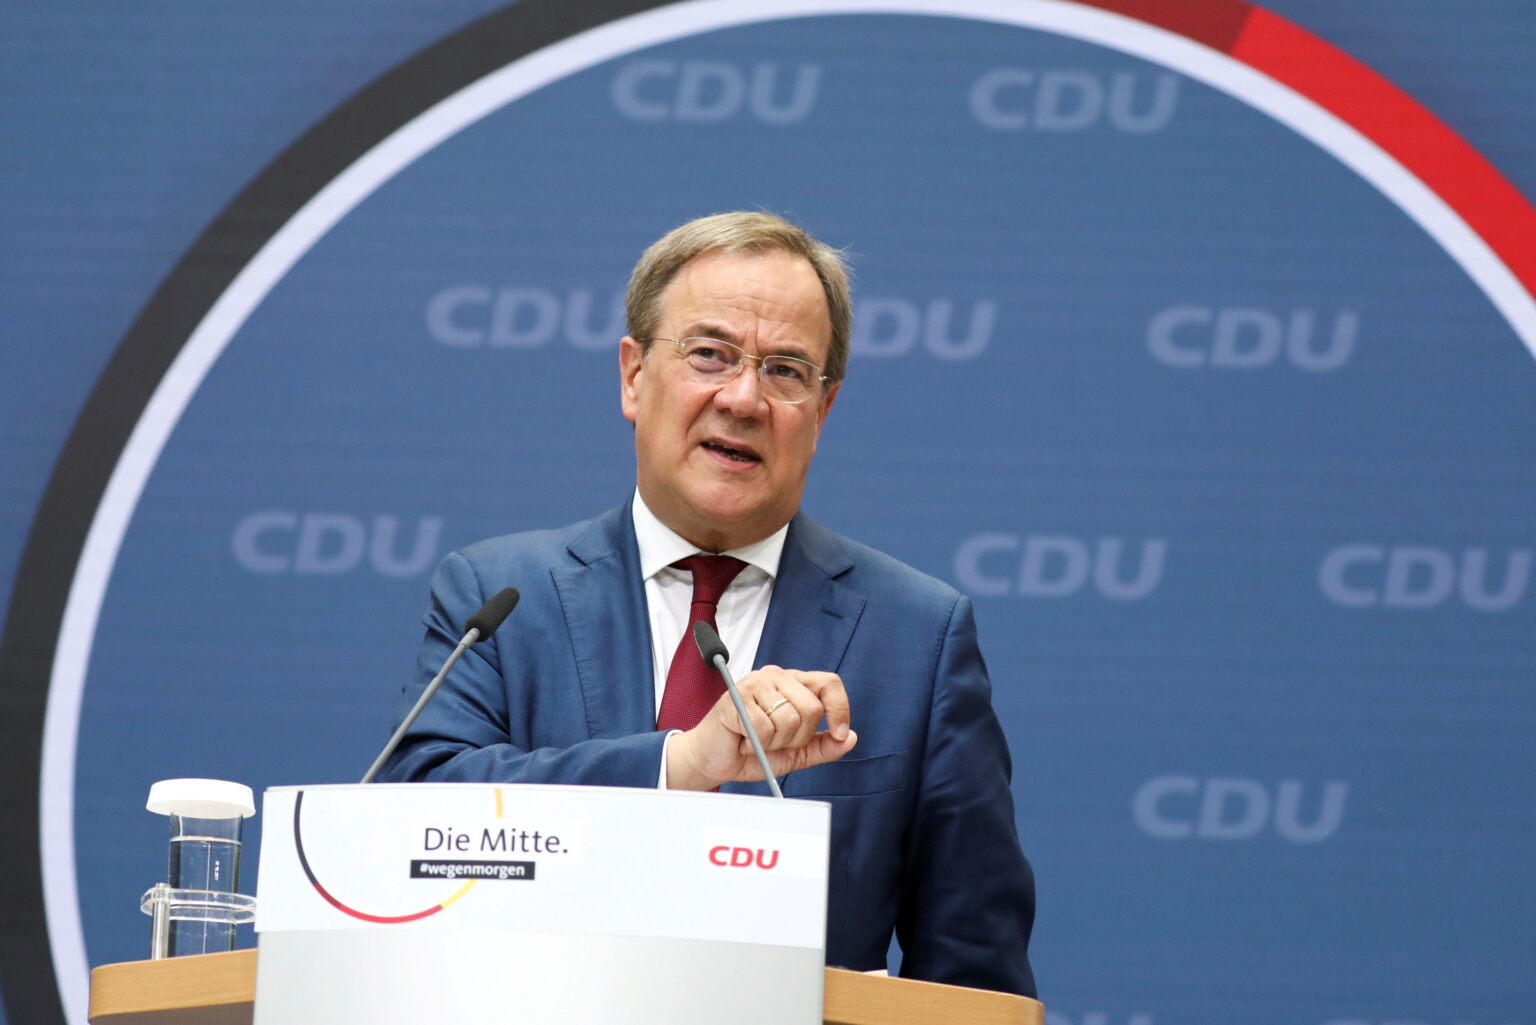 CDU party leader Laschet attends news conference in Berlin